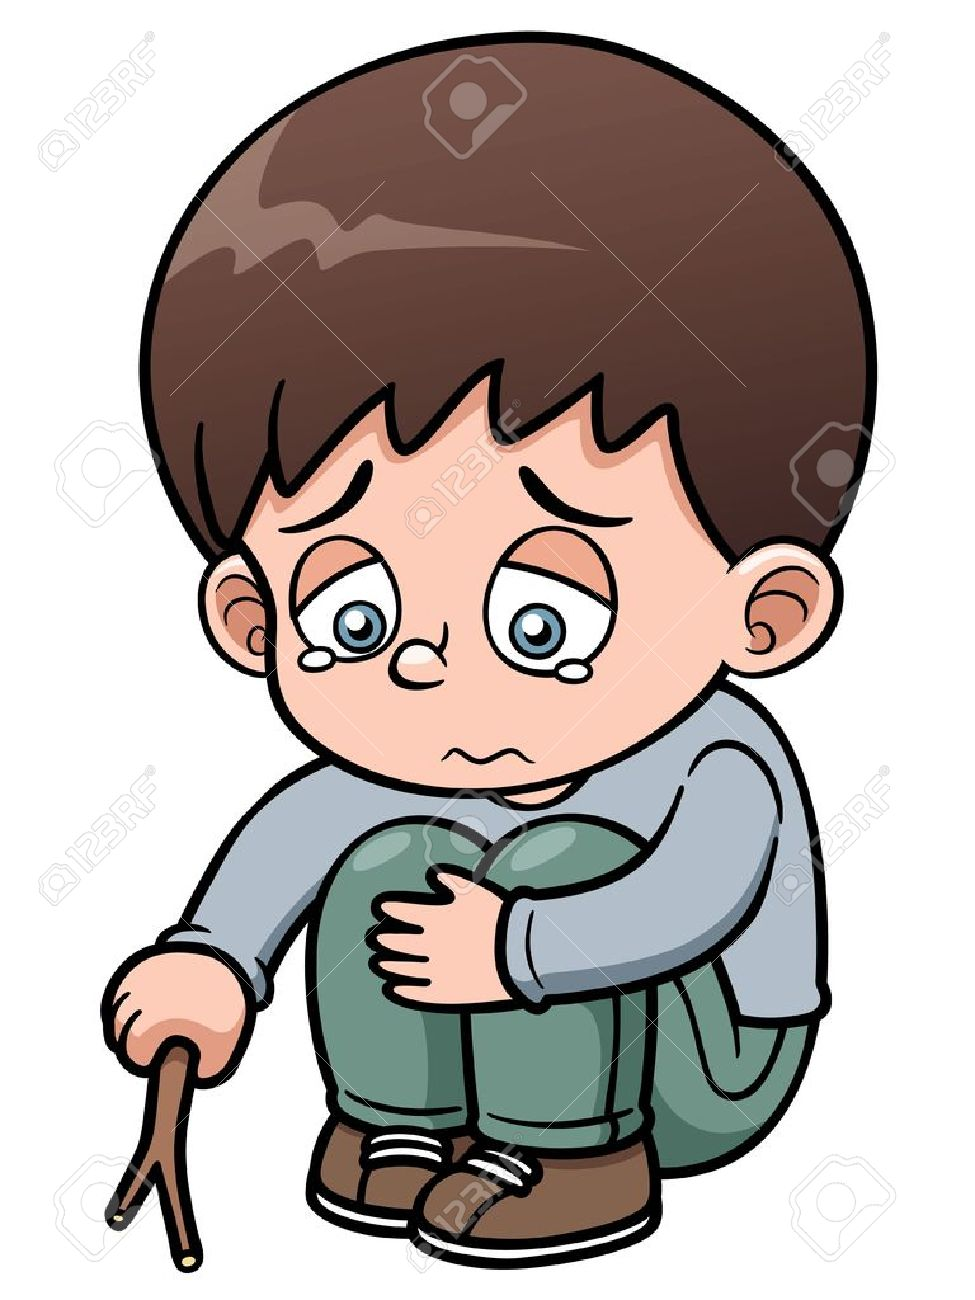 Depression cliparts free download. Emotions clipart sad guy